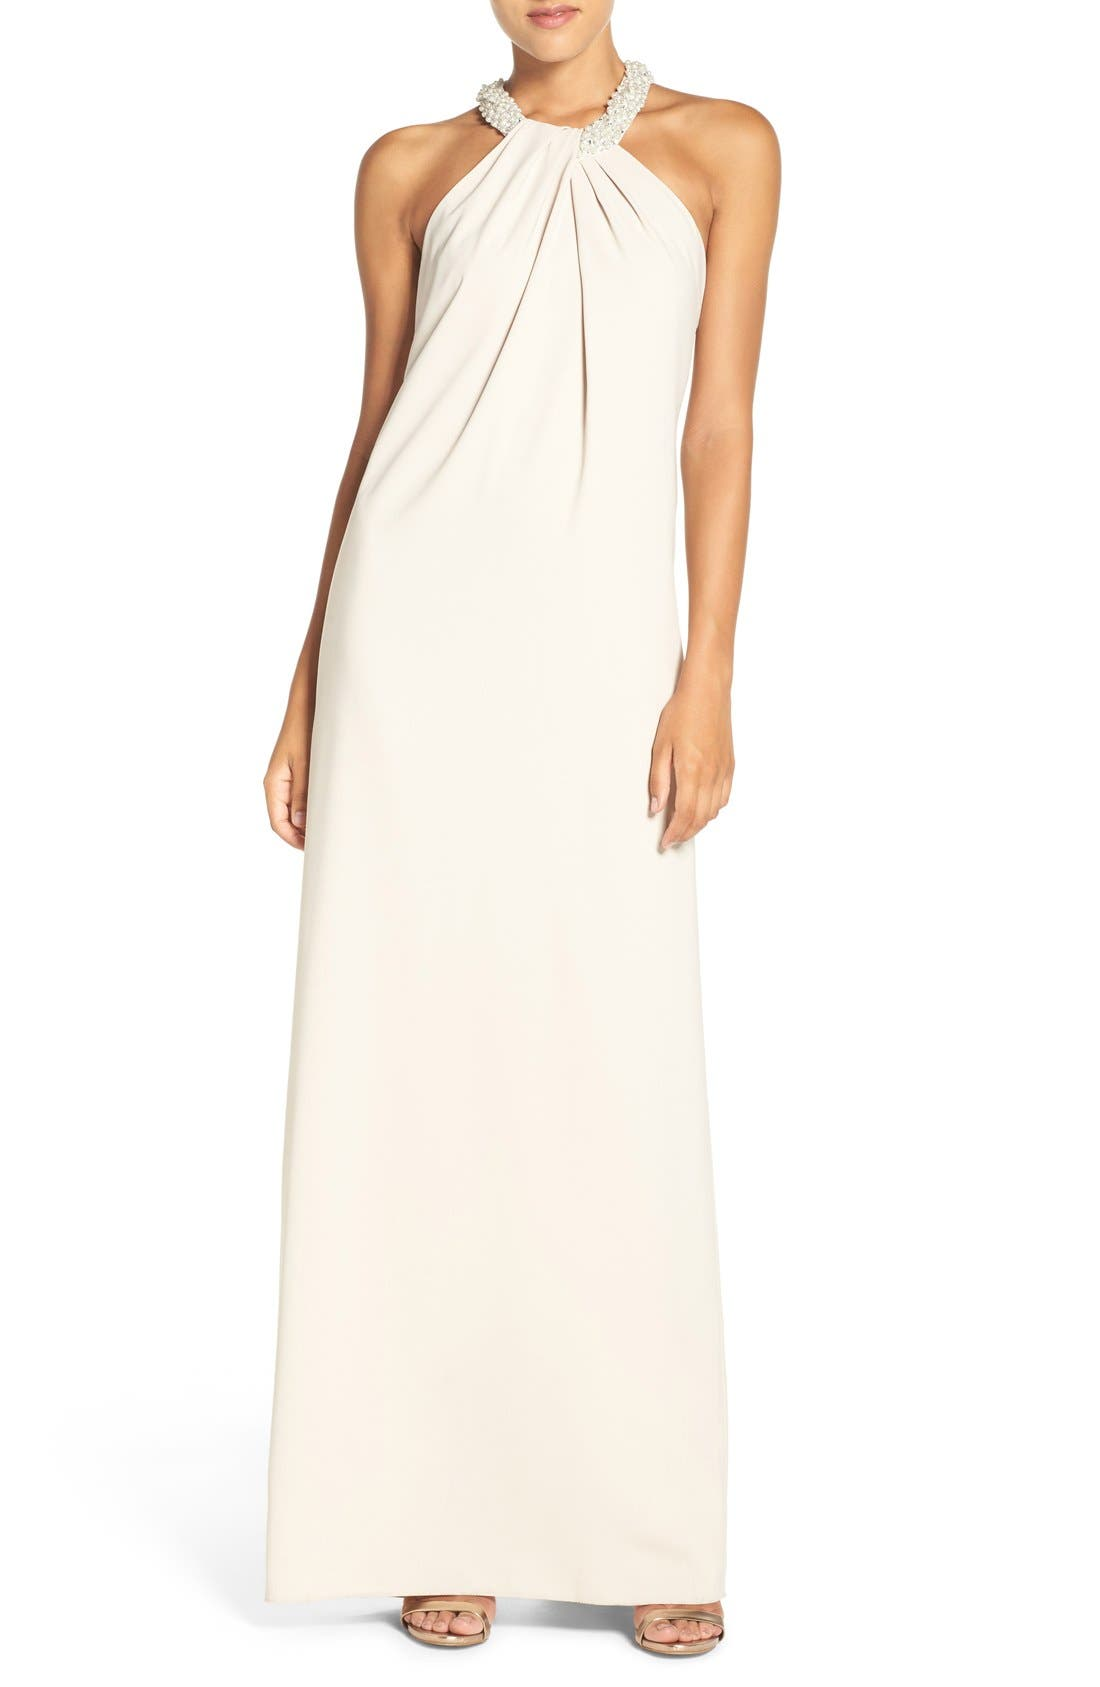 Alternate Image 1 Selected - Dessy Collection Beaded Halter Neck Crepe Gown